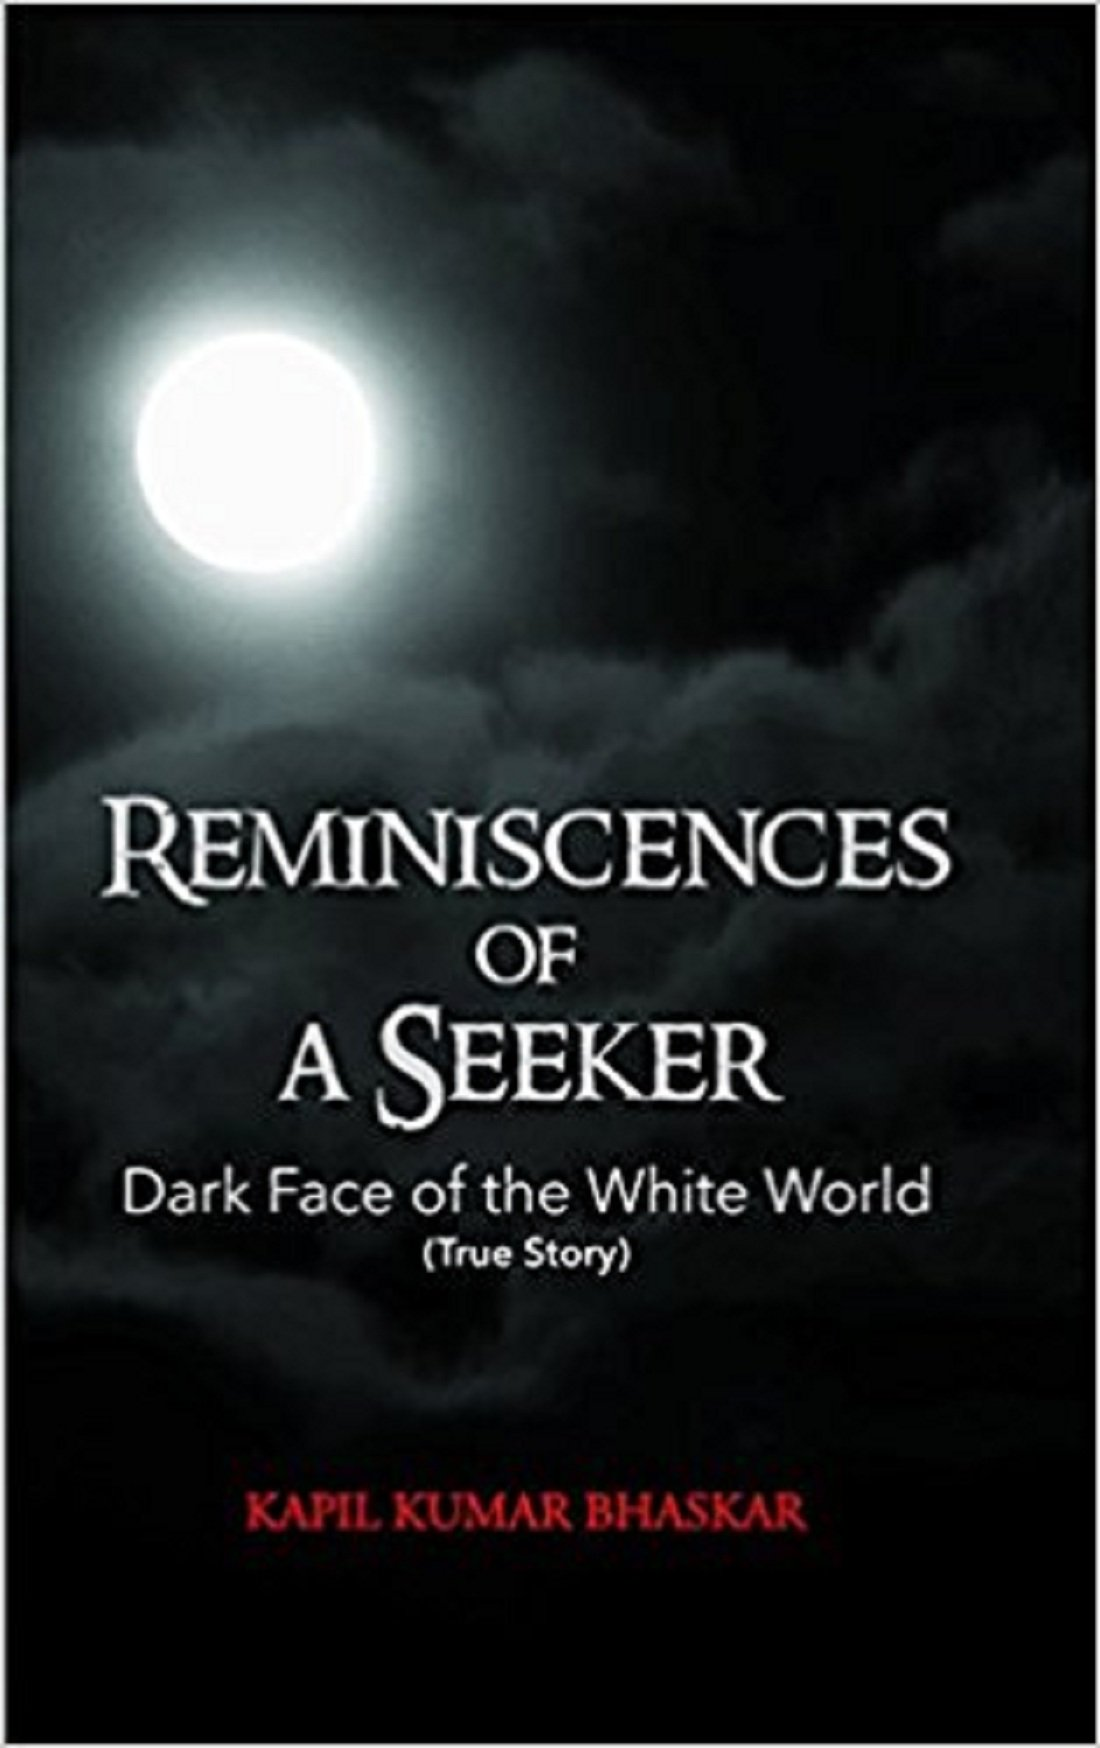 Buy Reminiscences Of A Seeker: Dark Face Of The White World